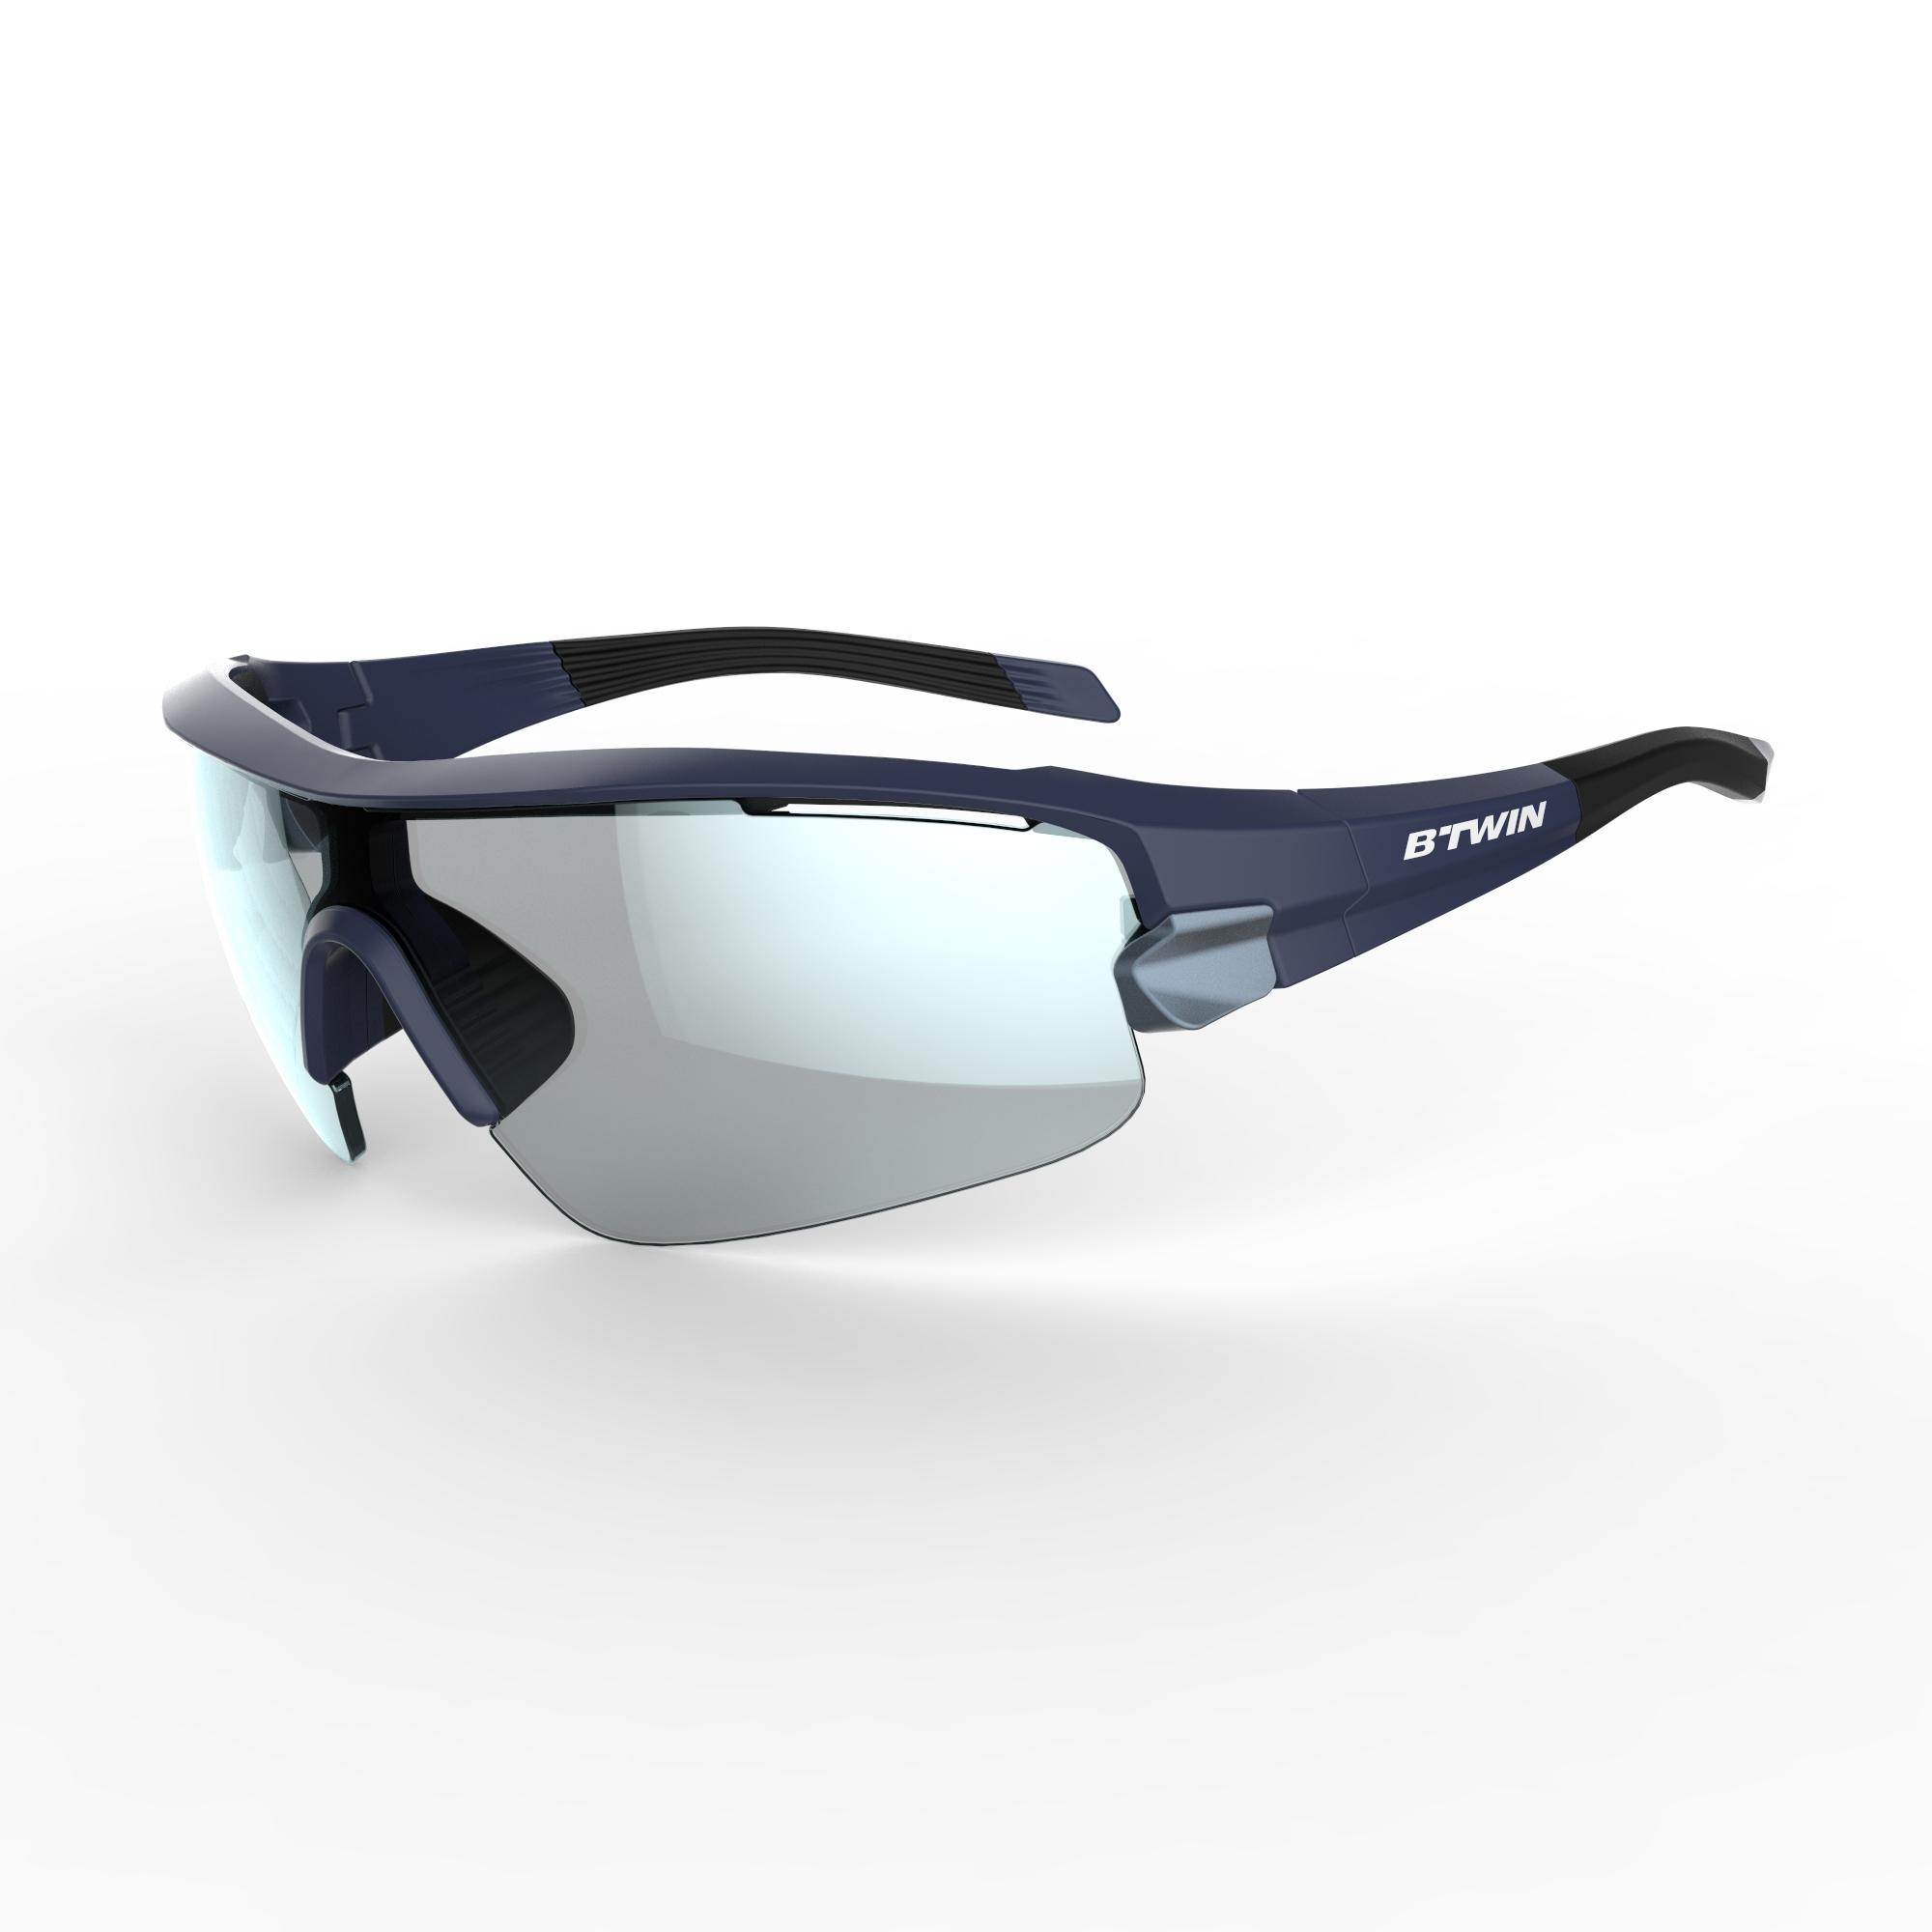 Roadr 900 Cycling Adult Sunglasses With 4-Pack Interchangeable Lenses - Navy